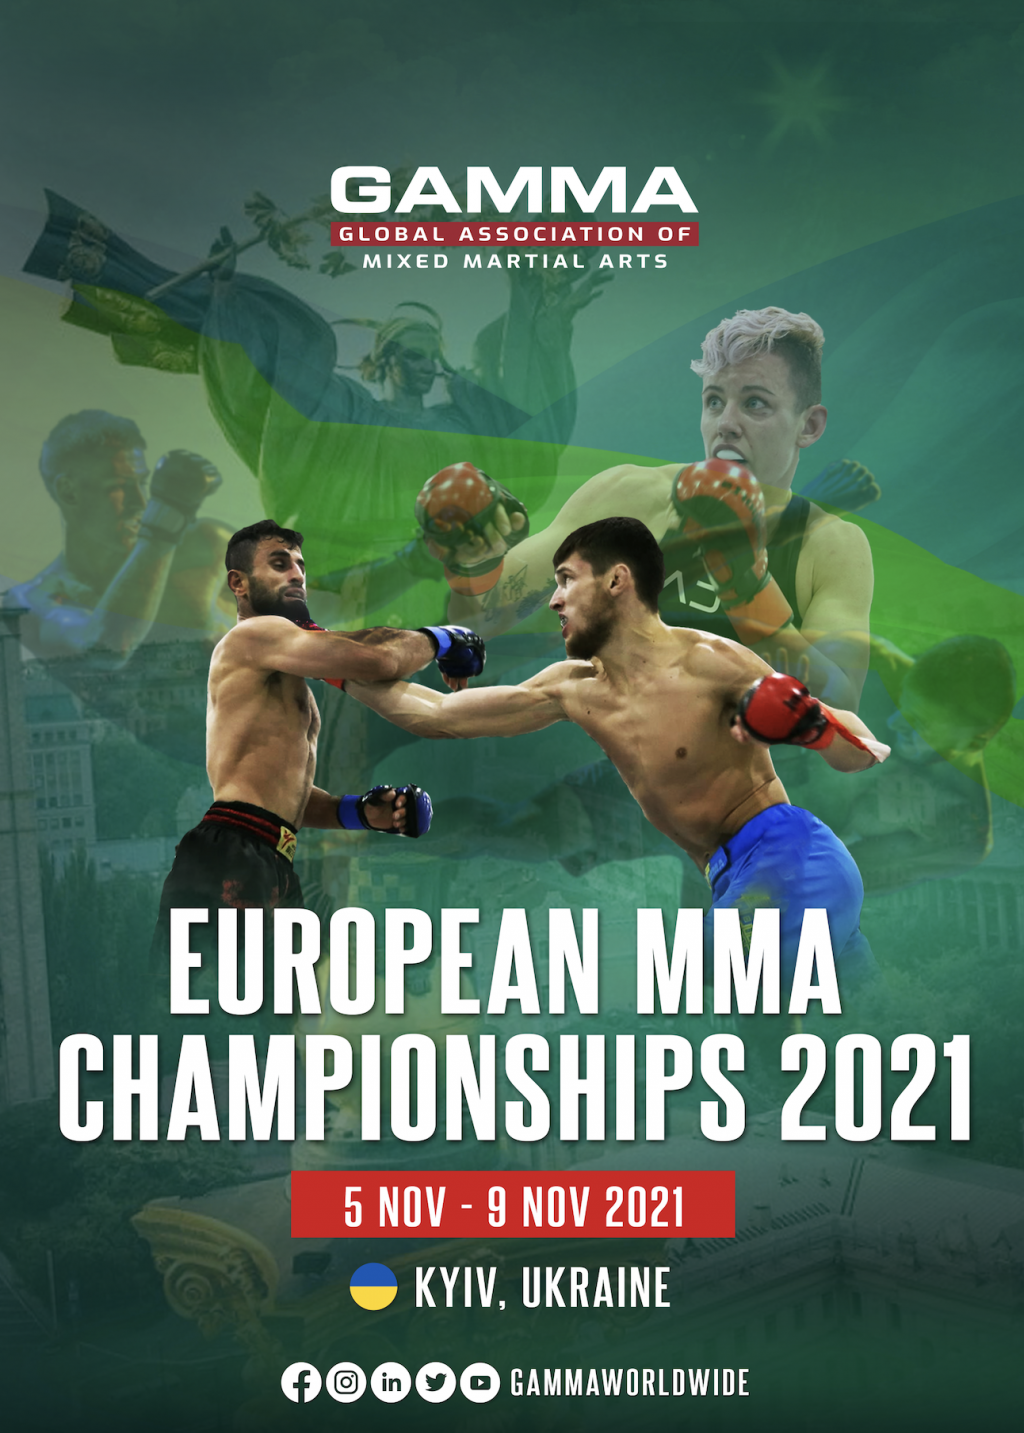 COVID Restrictions Force Move of European MMA Championships 2021 to Ukraine